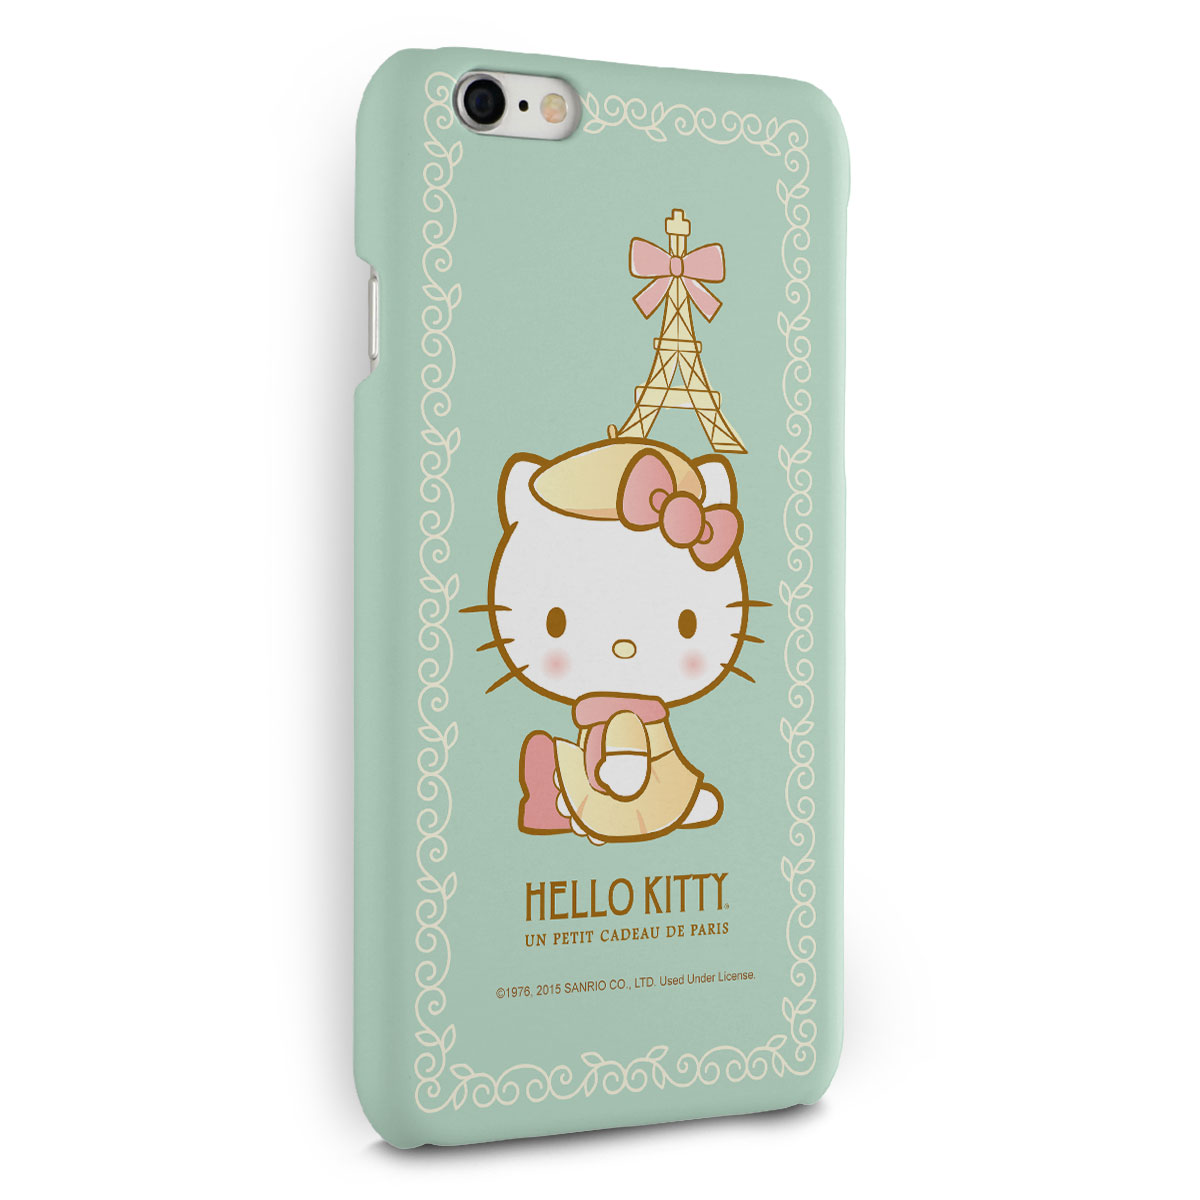 Capa para iPhone 6/6S Plus Hello Kitty Un Petit Cadeau